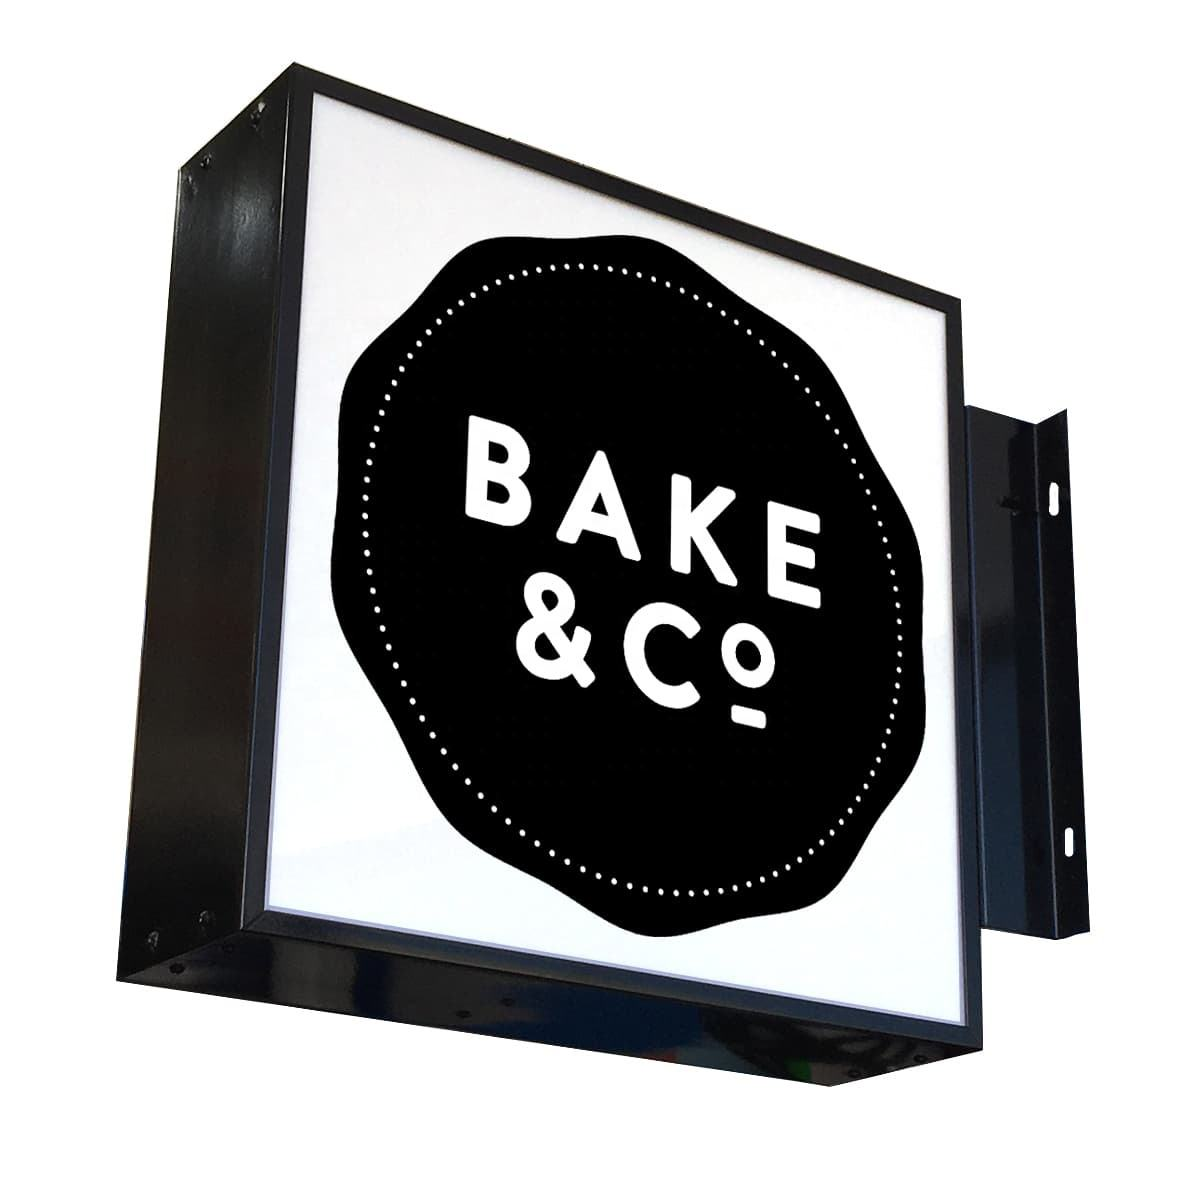 LED Wall Mounted Outdoor Advertising Rotating Light Box Signs für Company